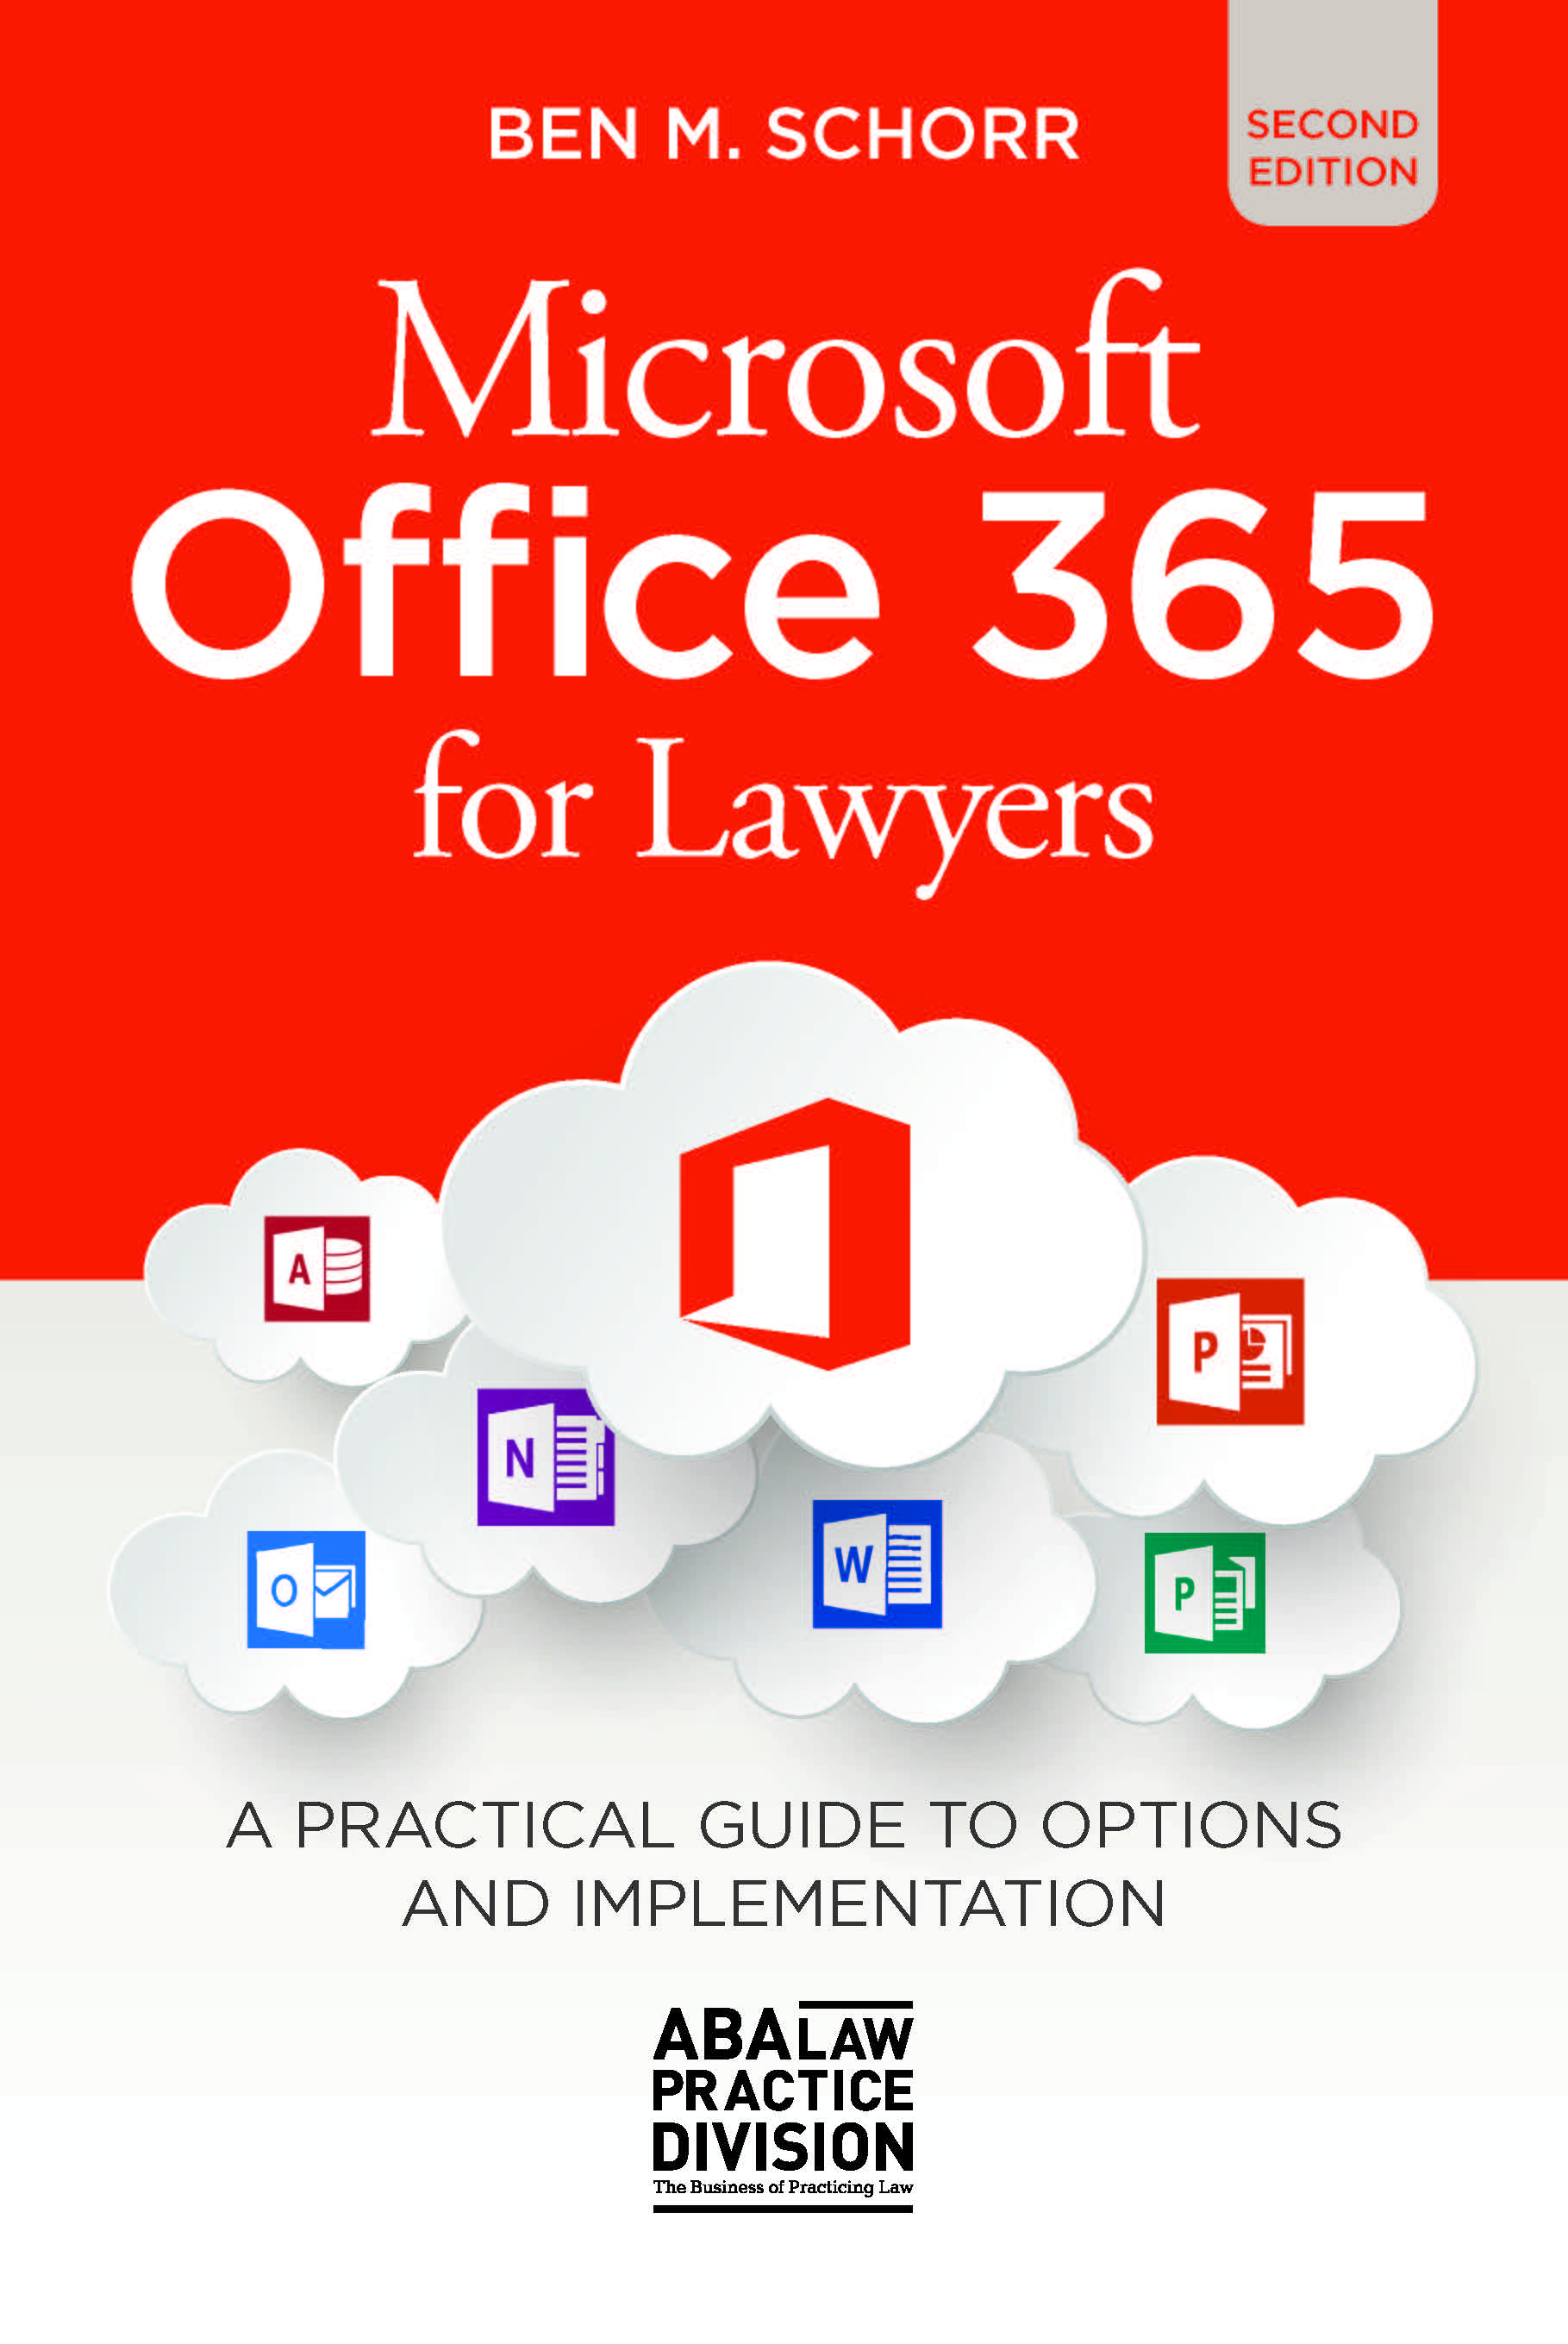 Microsoft Office 365 for Lawyers, Second Edition